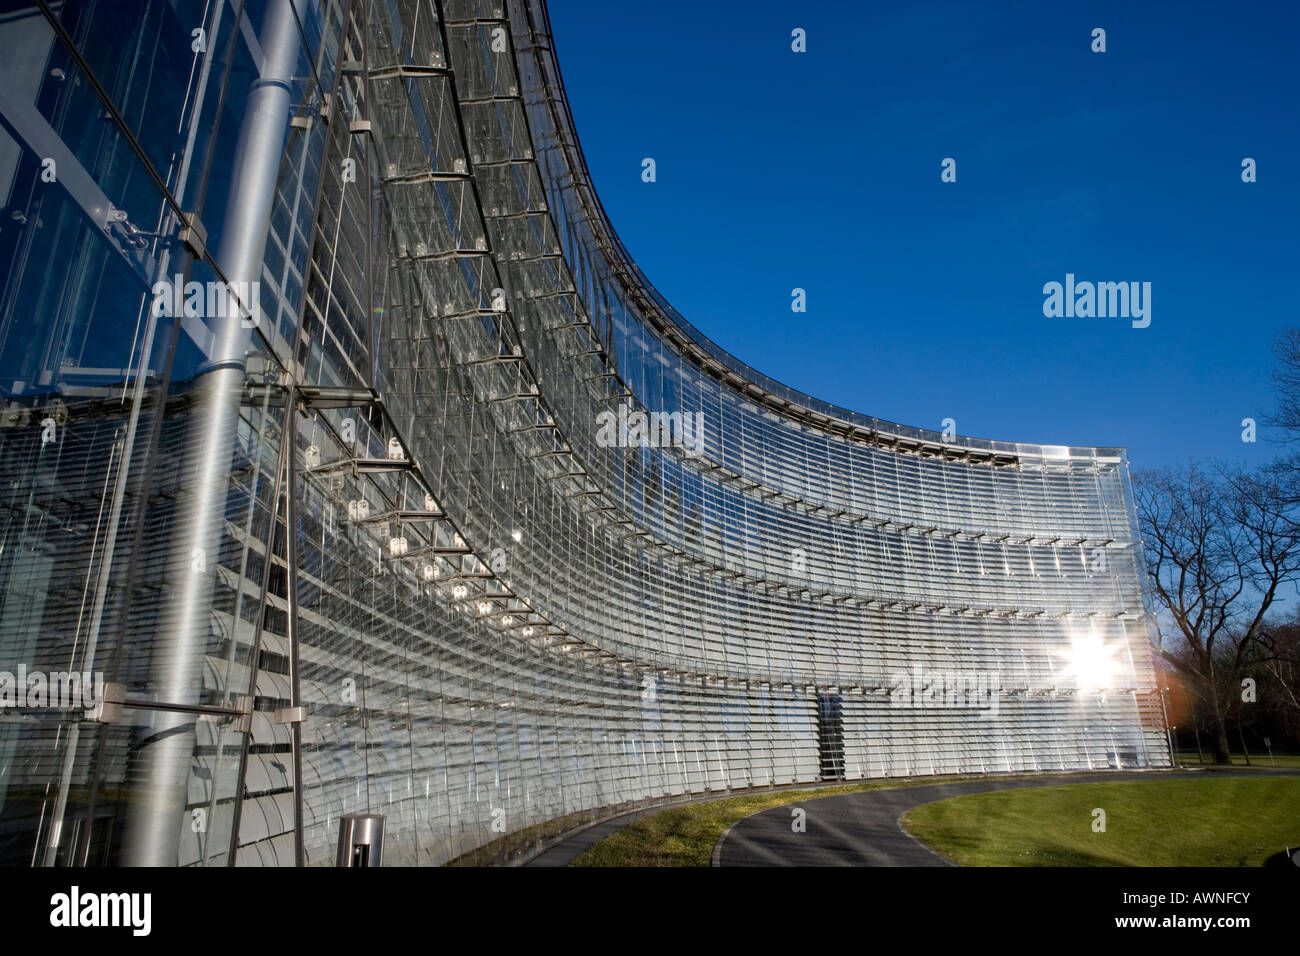 The administrative building of Bayer AG in Leverkusen das Verwaltungsgebäude der Bayer AG shading automatic - Stock Image